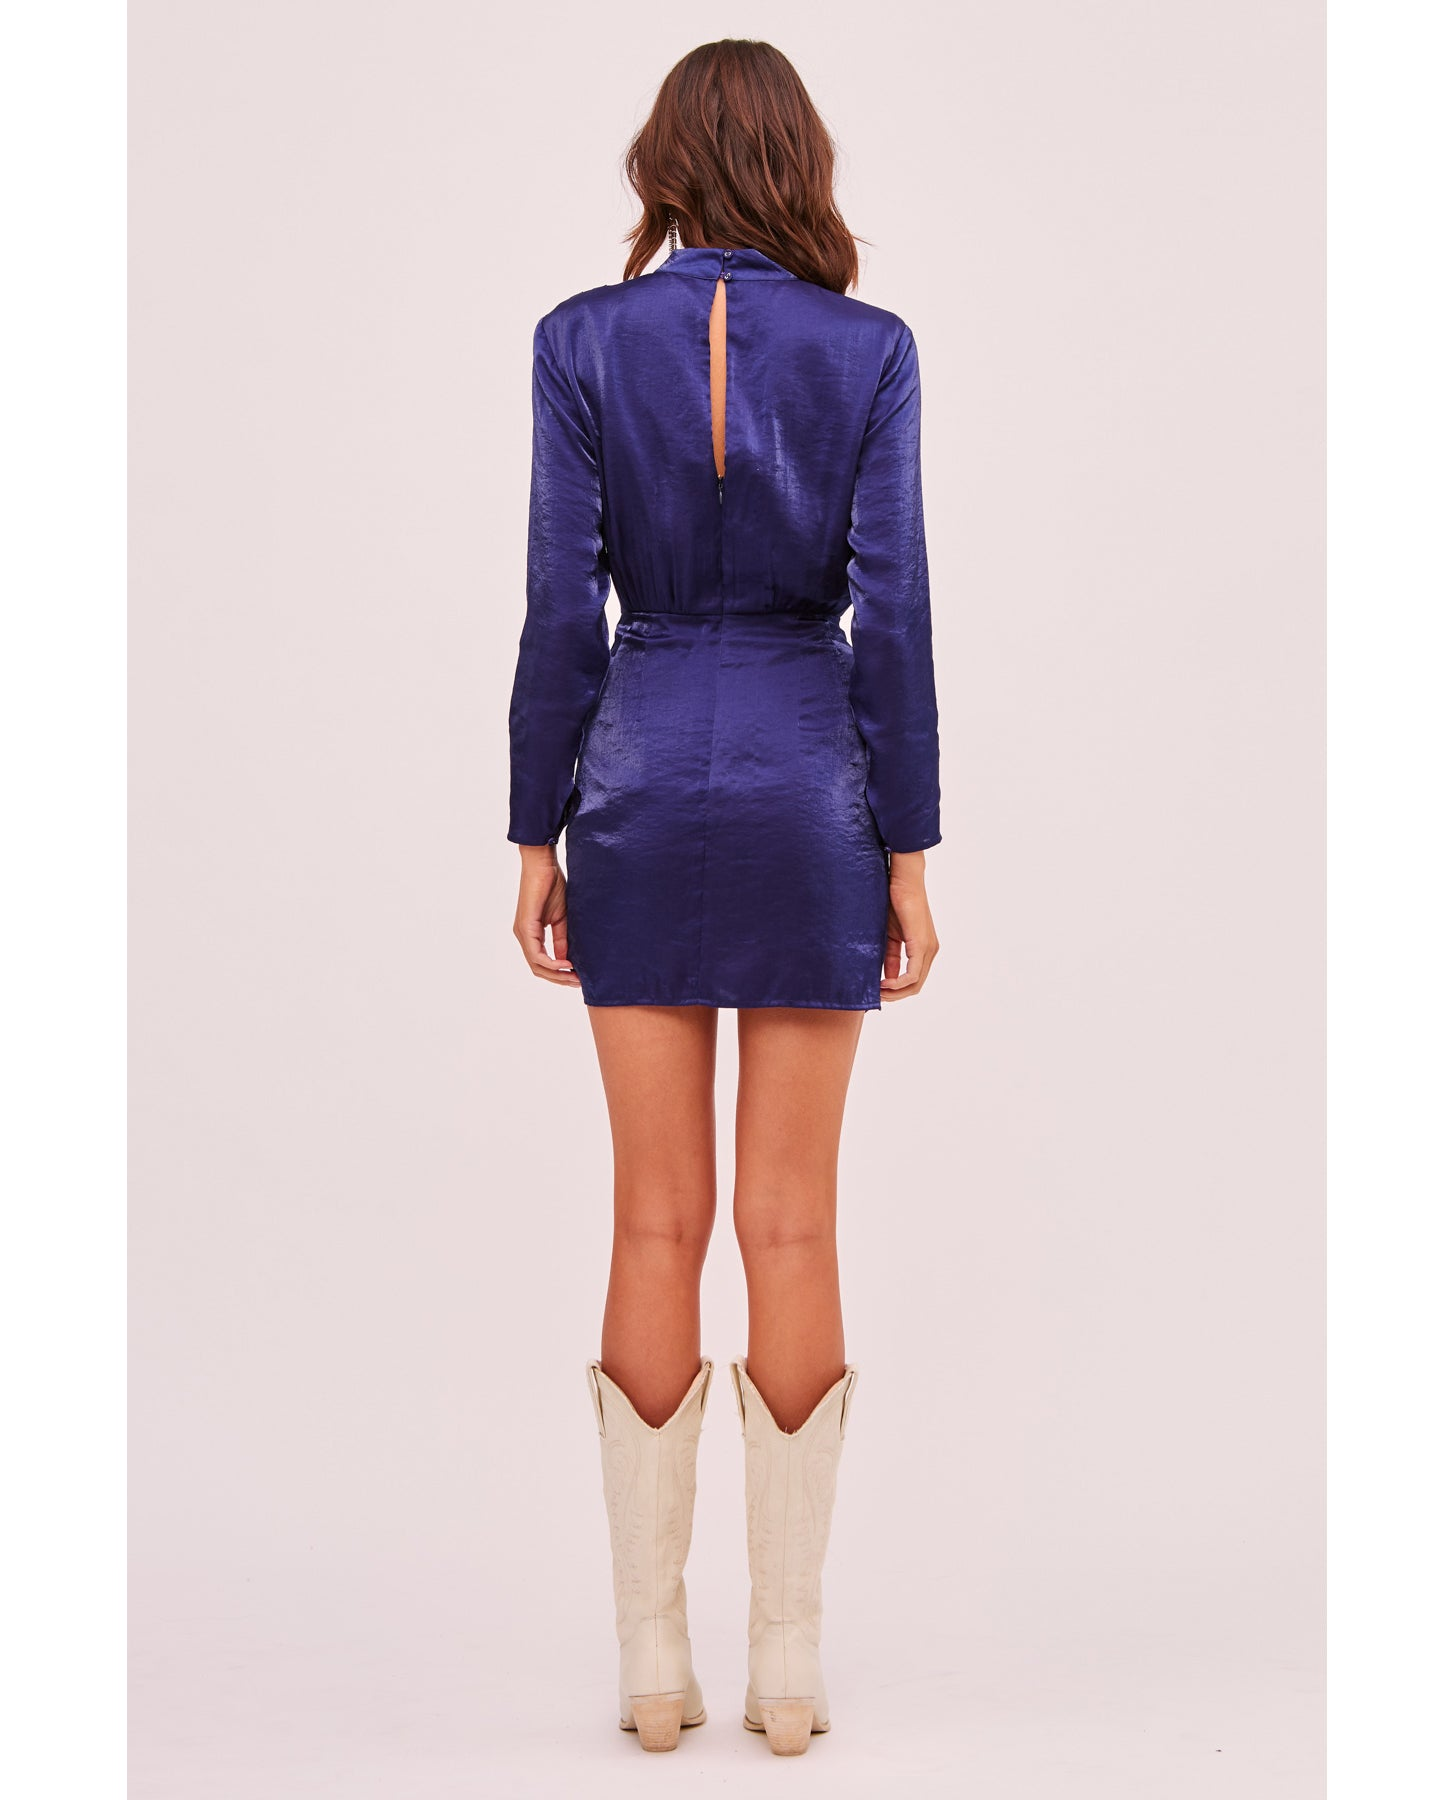 FINDERS KEEPERS YASMINE LS NAVY DRESS